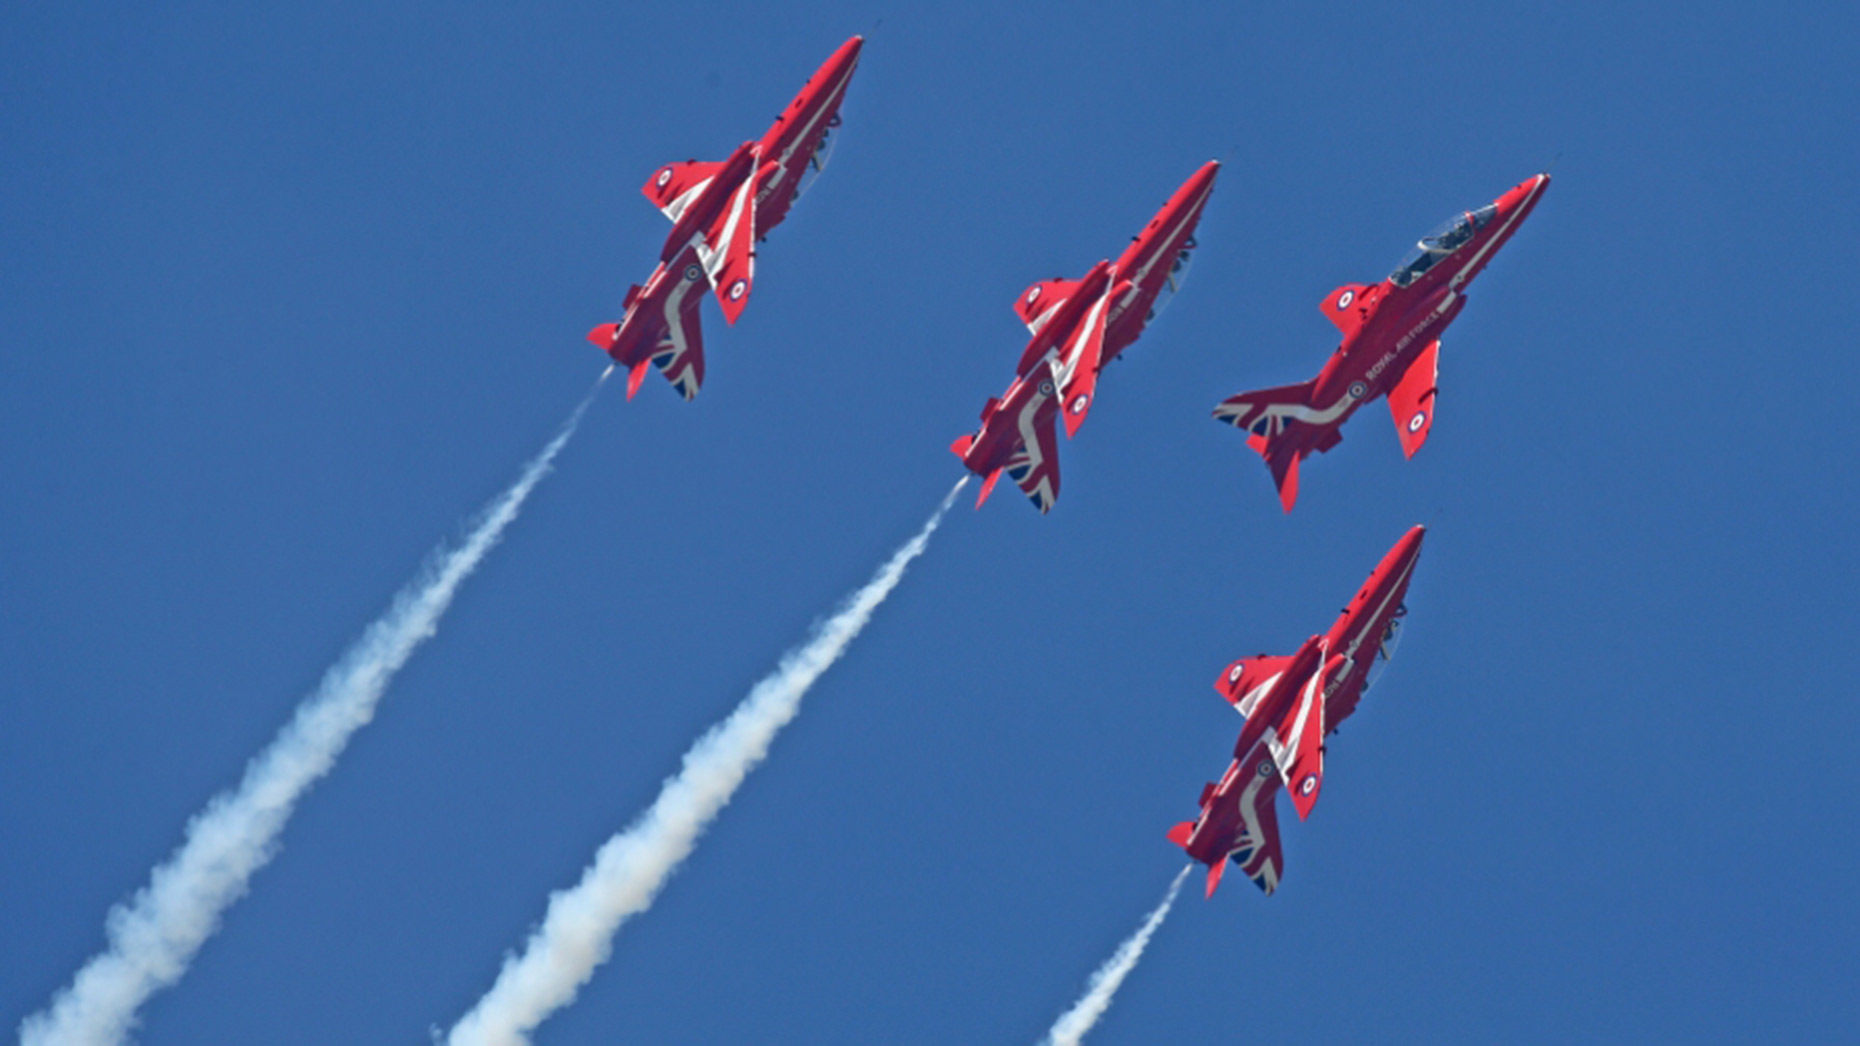 Jets of the Royal Air Force Aerobatic Team, the Red Arrows, showing their new Union flag tailfin. MoD/Crown Copyright